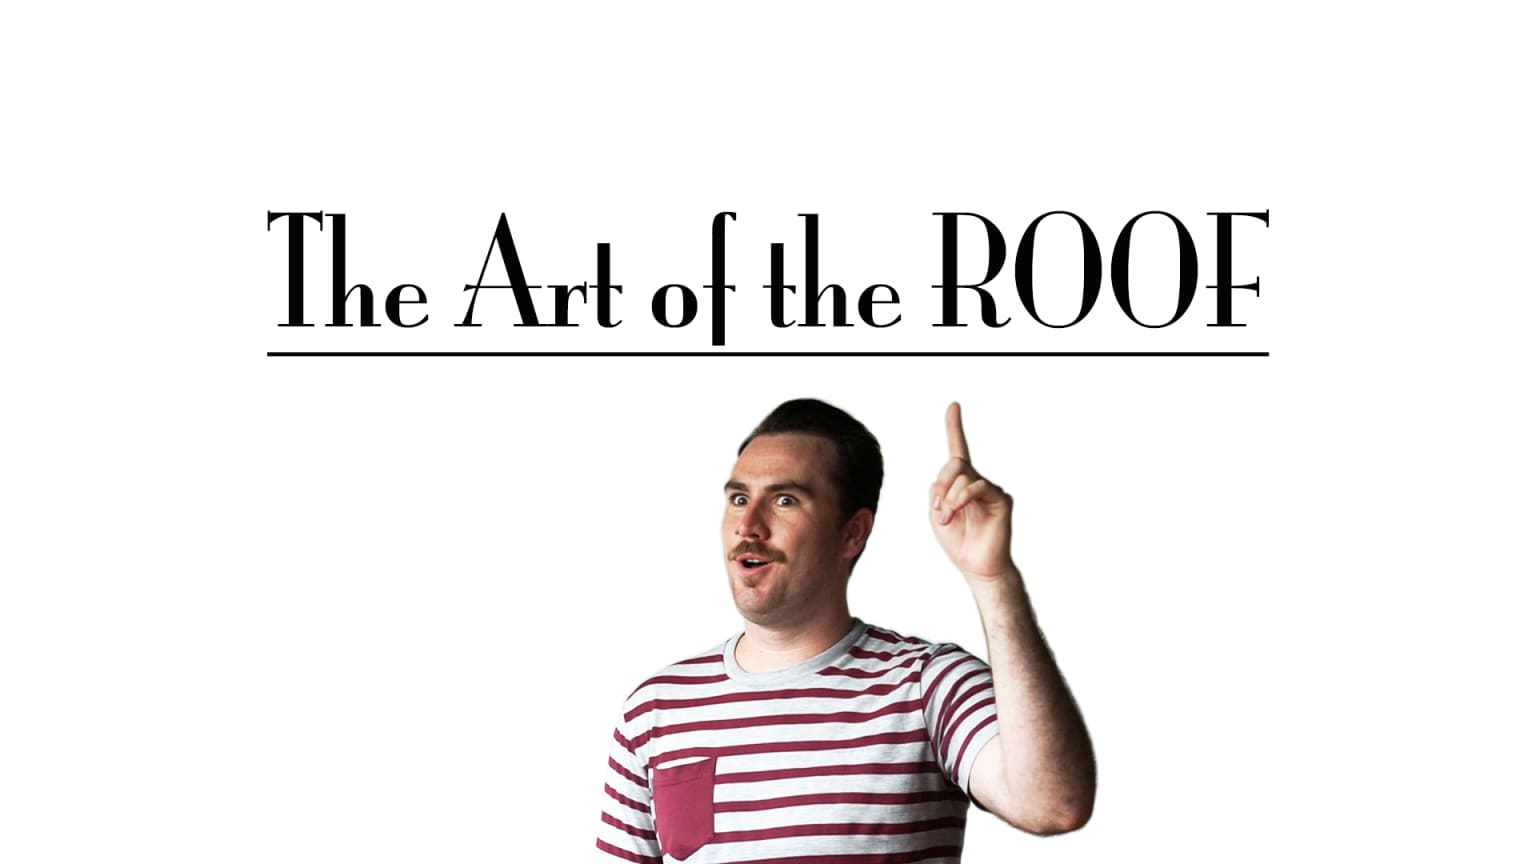 The Art of the ROOF